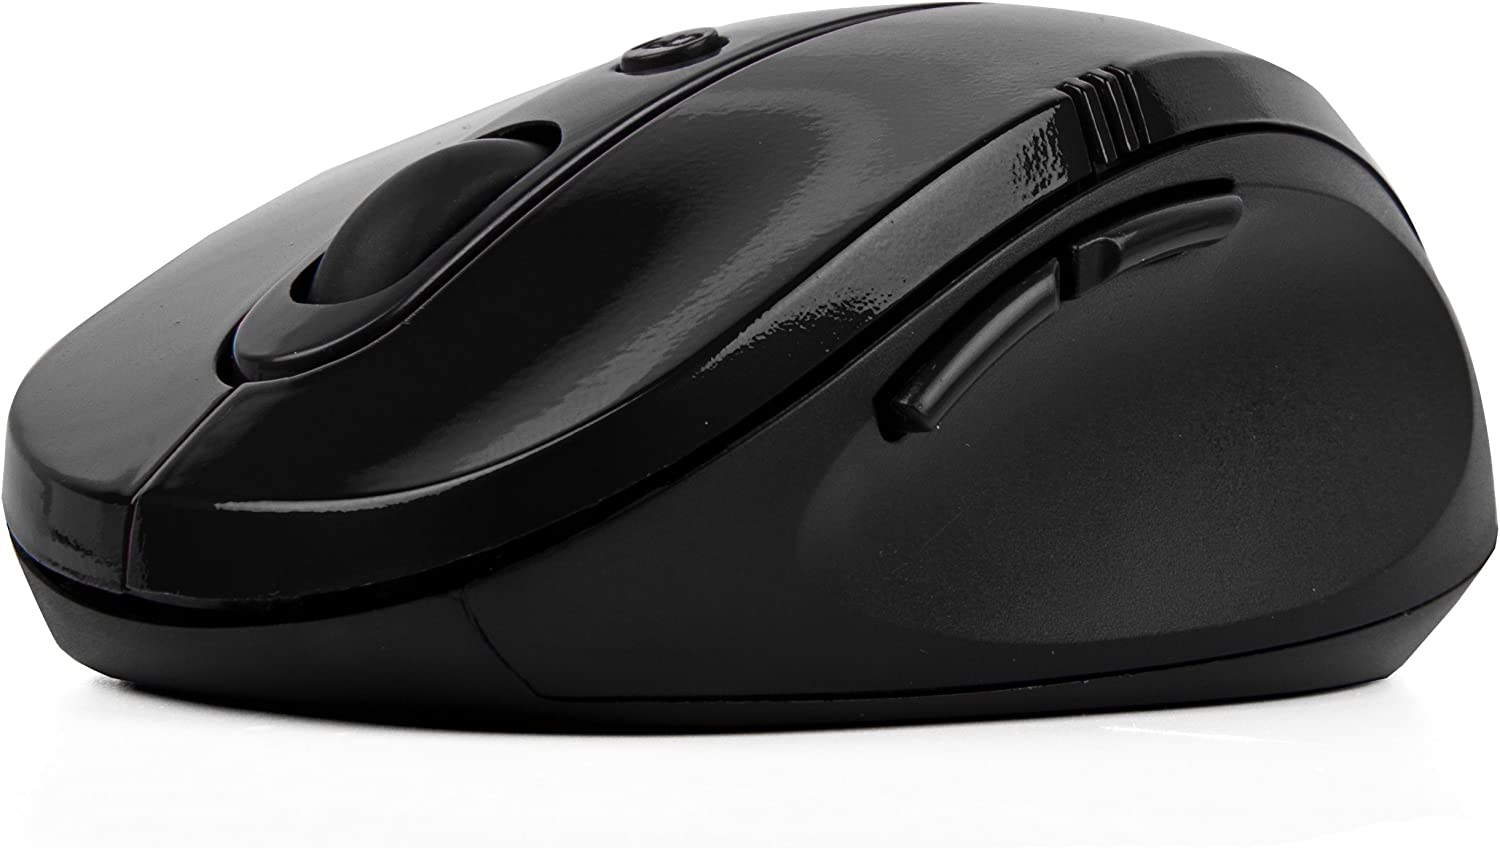 Black Gloss Wireless Mouse Accessory for Toshiba Laptop/Computer/Satellite